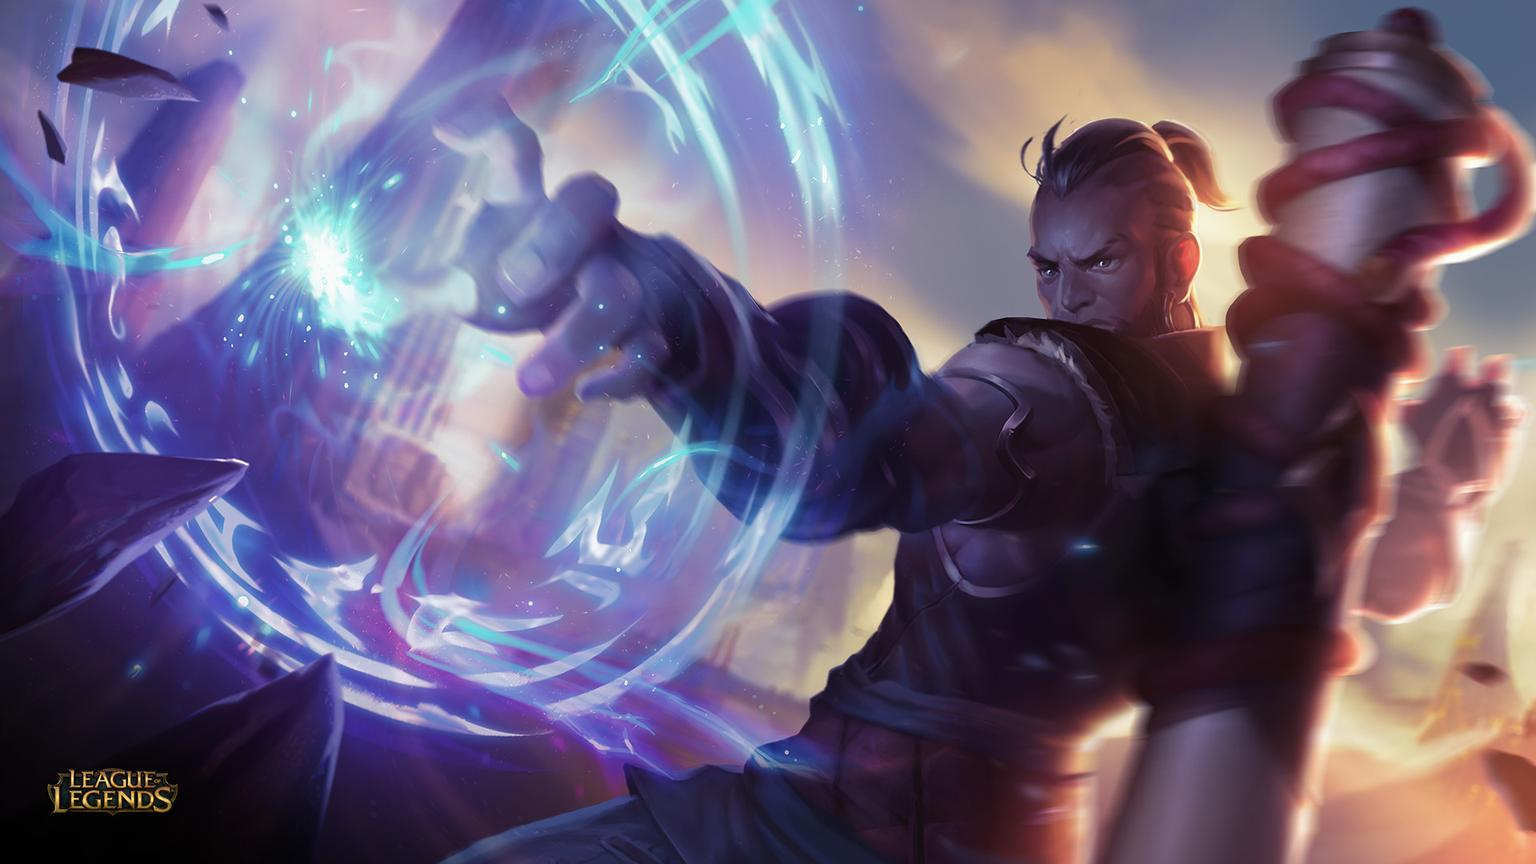 So Ive Been Playing League Of Legends Since Season 2 Thats Not New Old Ground But Today I Saw That A Ryze Rework Visual And Skill Based Is